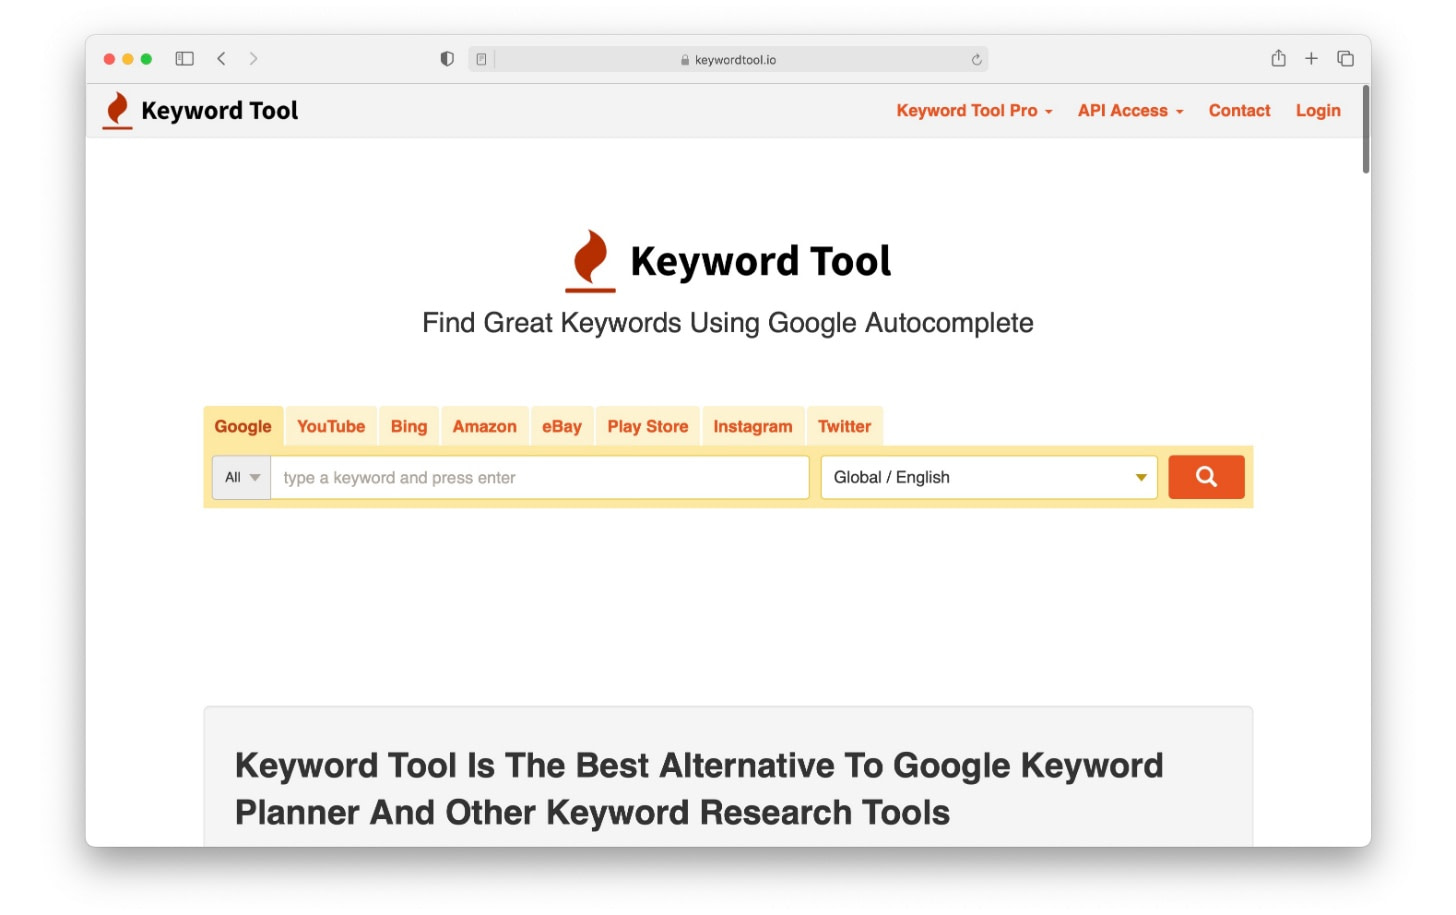 Keyword Tool is an SEO tool for keyword research